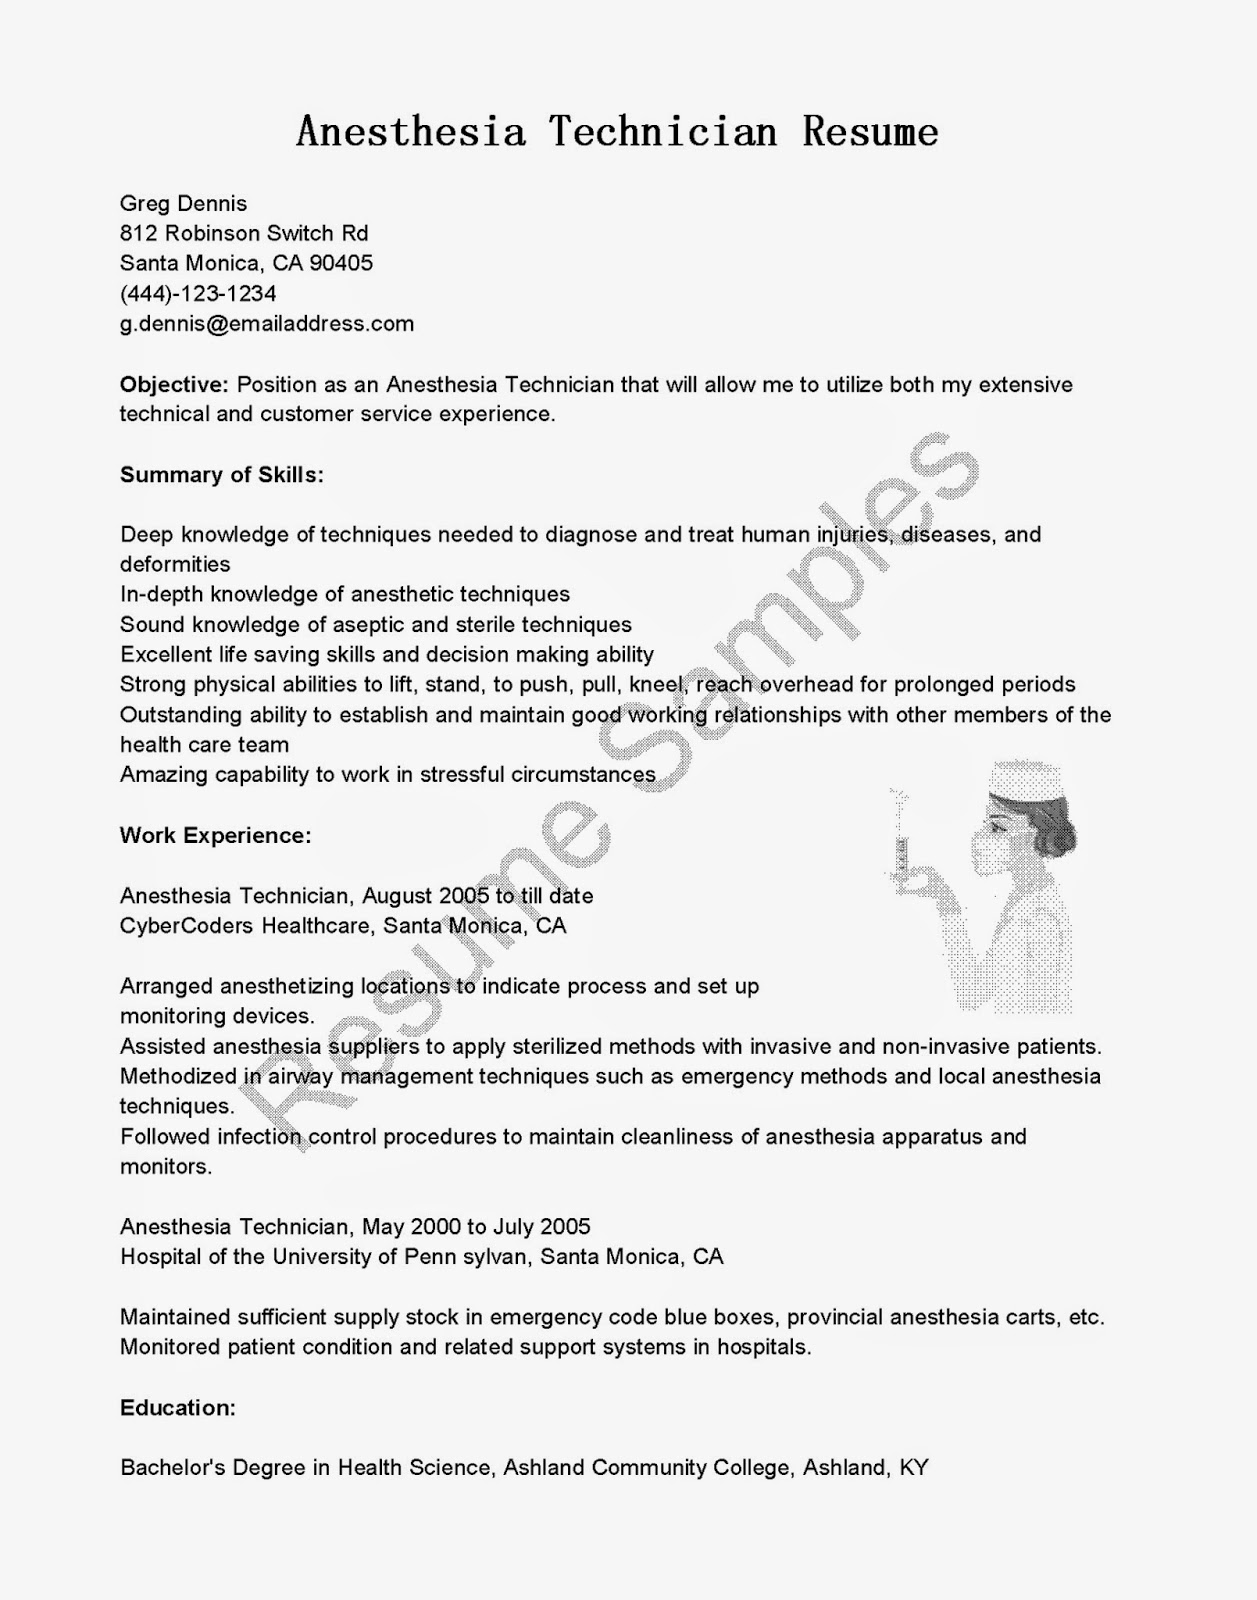 er technician resume sample pharmacy technician resume sample pharmacy technician resume examples